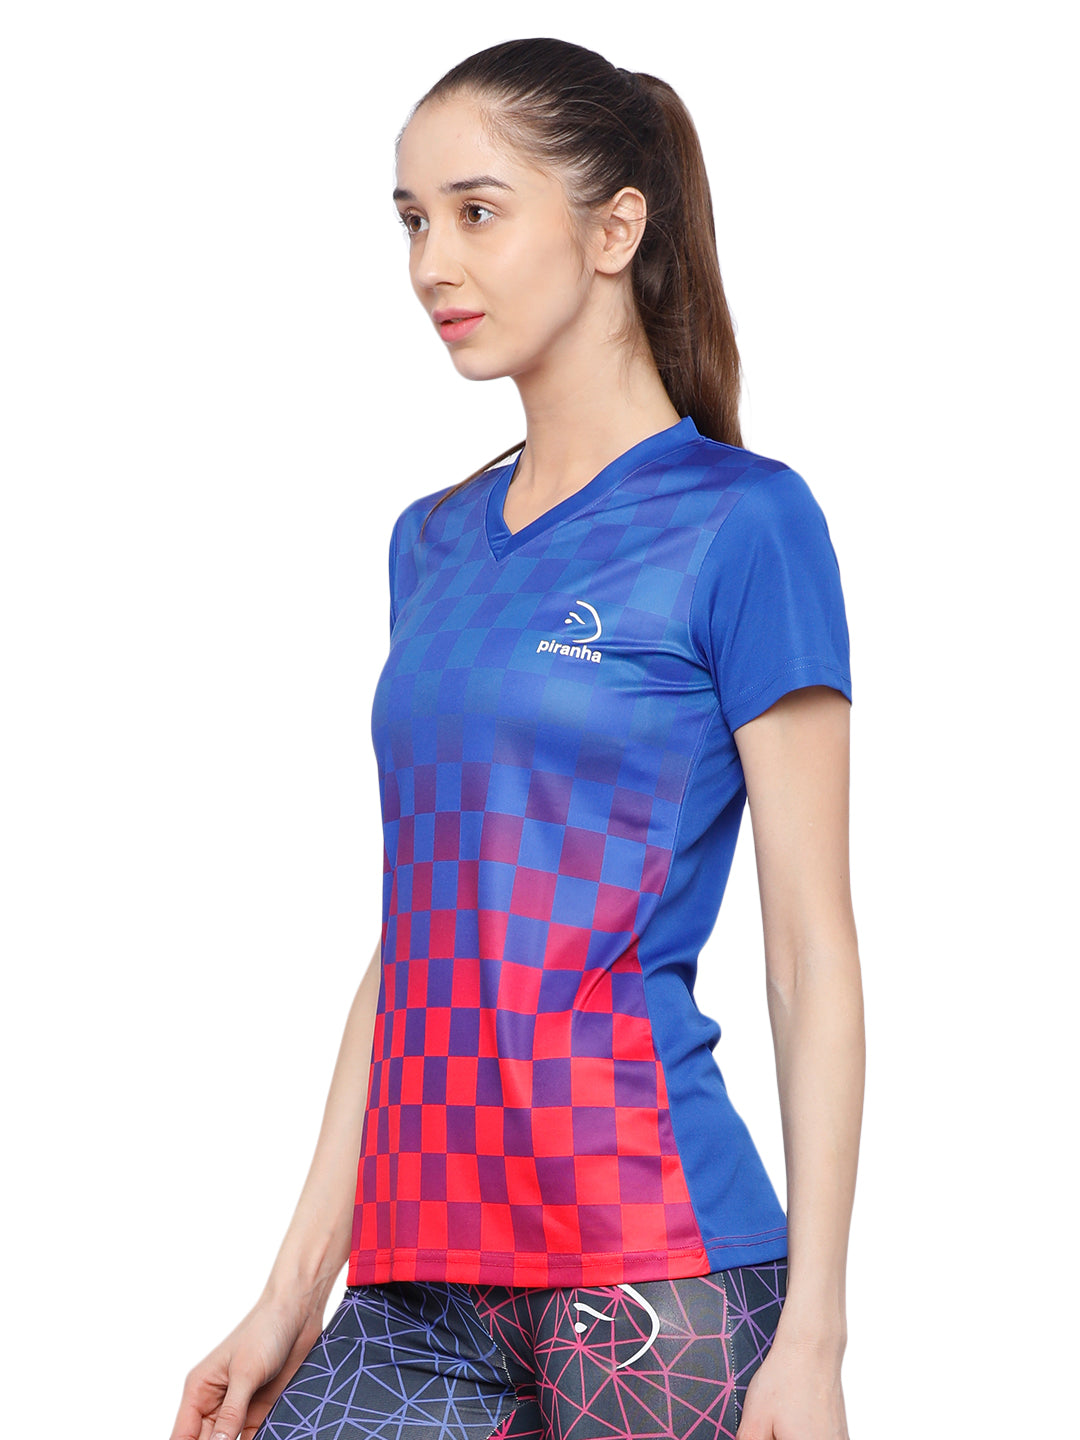 Piranha Women's Blue T-shirt TSG13B